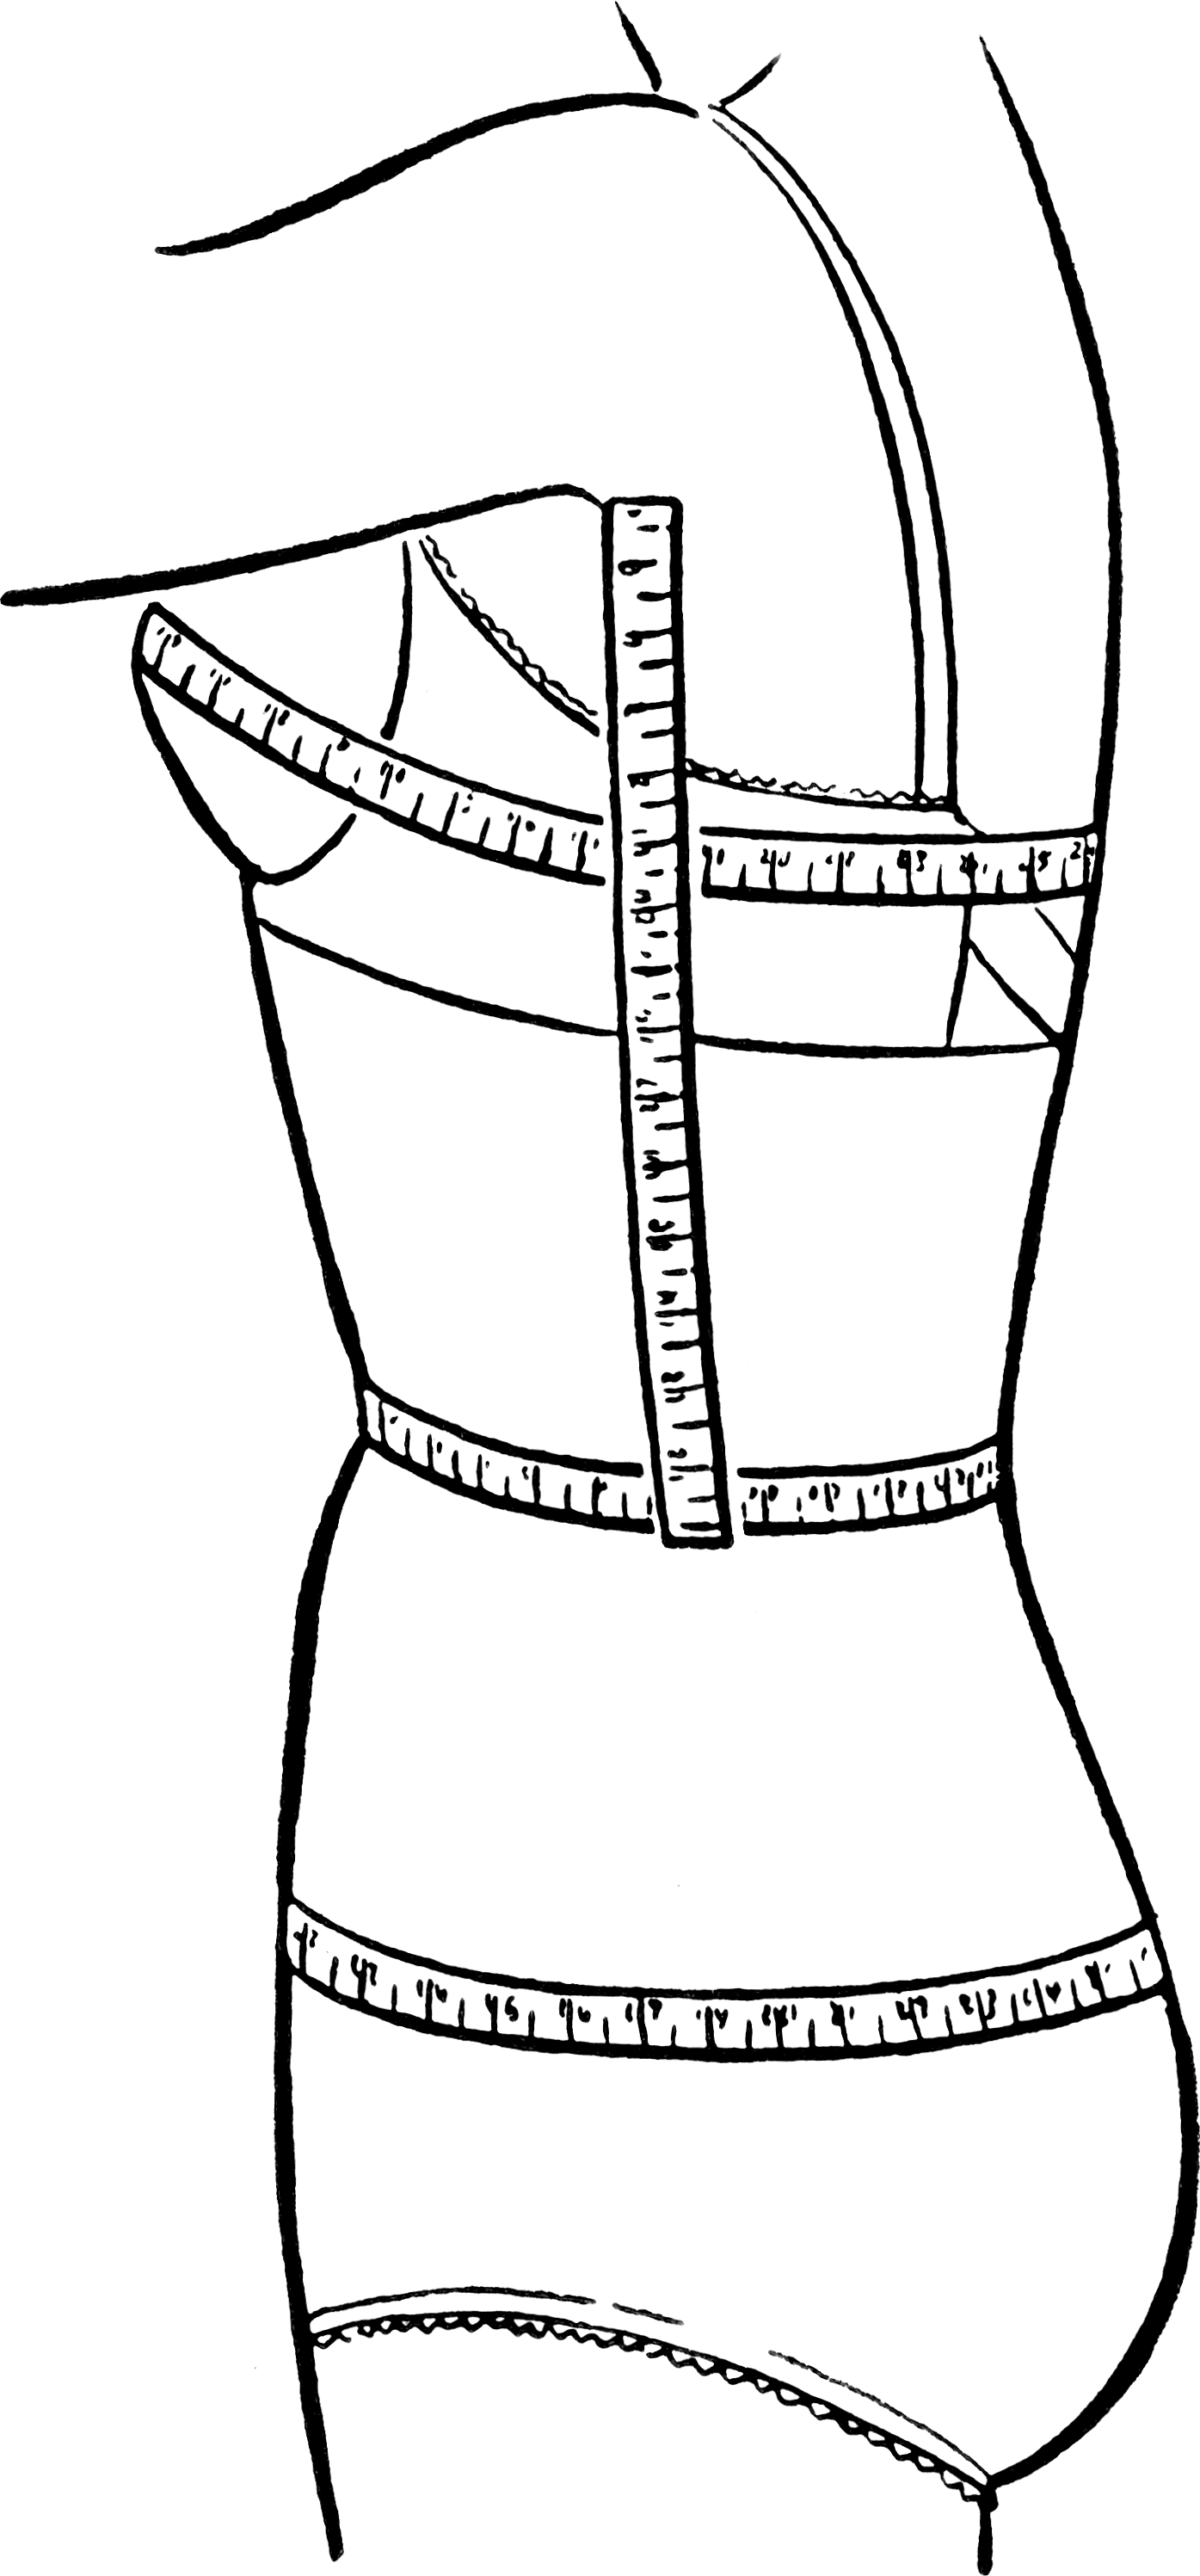 Bust/waist/hip measurements - Wikipedia